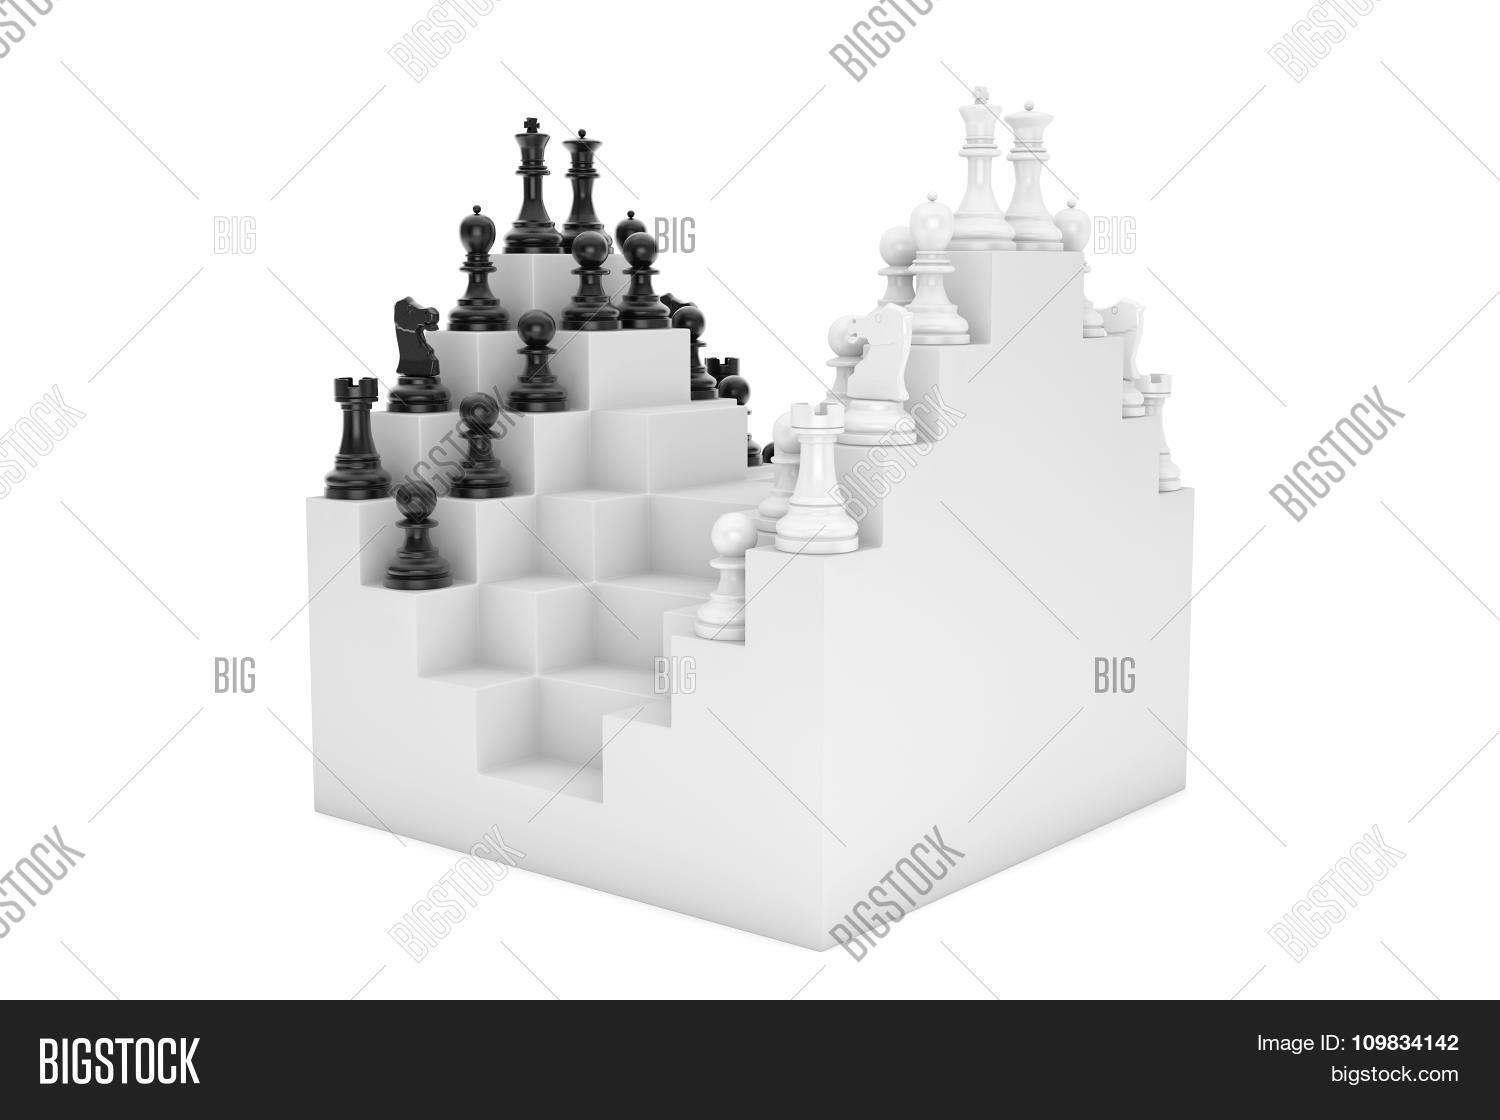 abstract,achievement,battle,black,board,business,challenge,chess,chessboard,choice,combat,competition,concept,decision,entertainment,fight,game,group,hand,hobby,holding,intelligence,king,knight,leadership,leisure,move,objects,pawn,pieces,planning,play,power,queen,rook,set,shape,sport,strategic,strategy,success,tactic,team,teamwork,thinking,victory,war,white,win,wooden